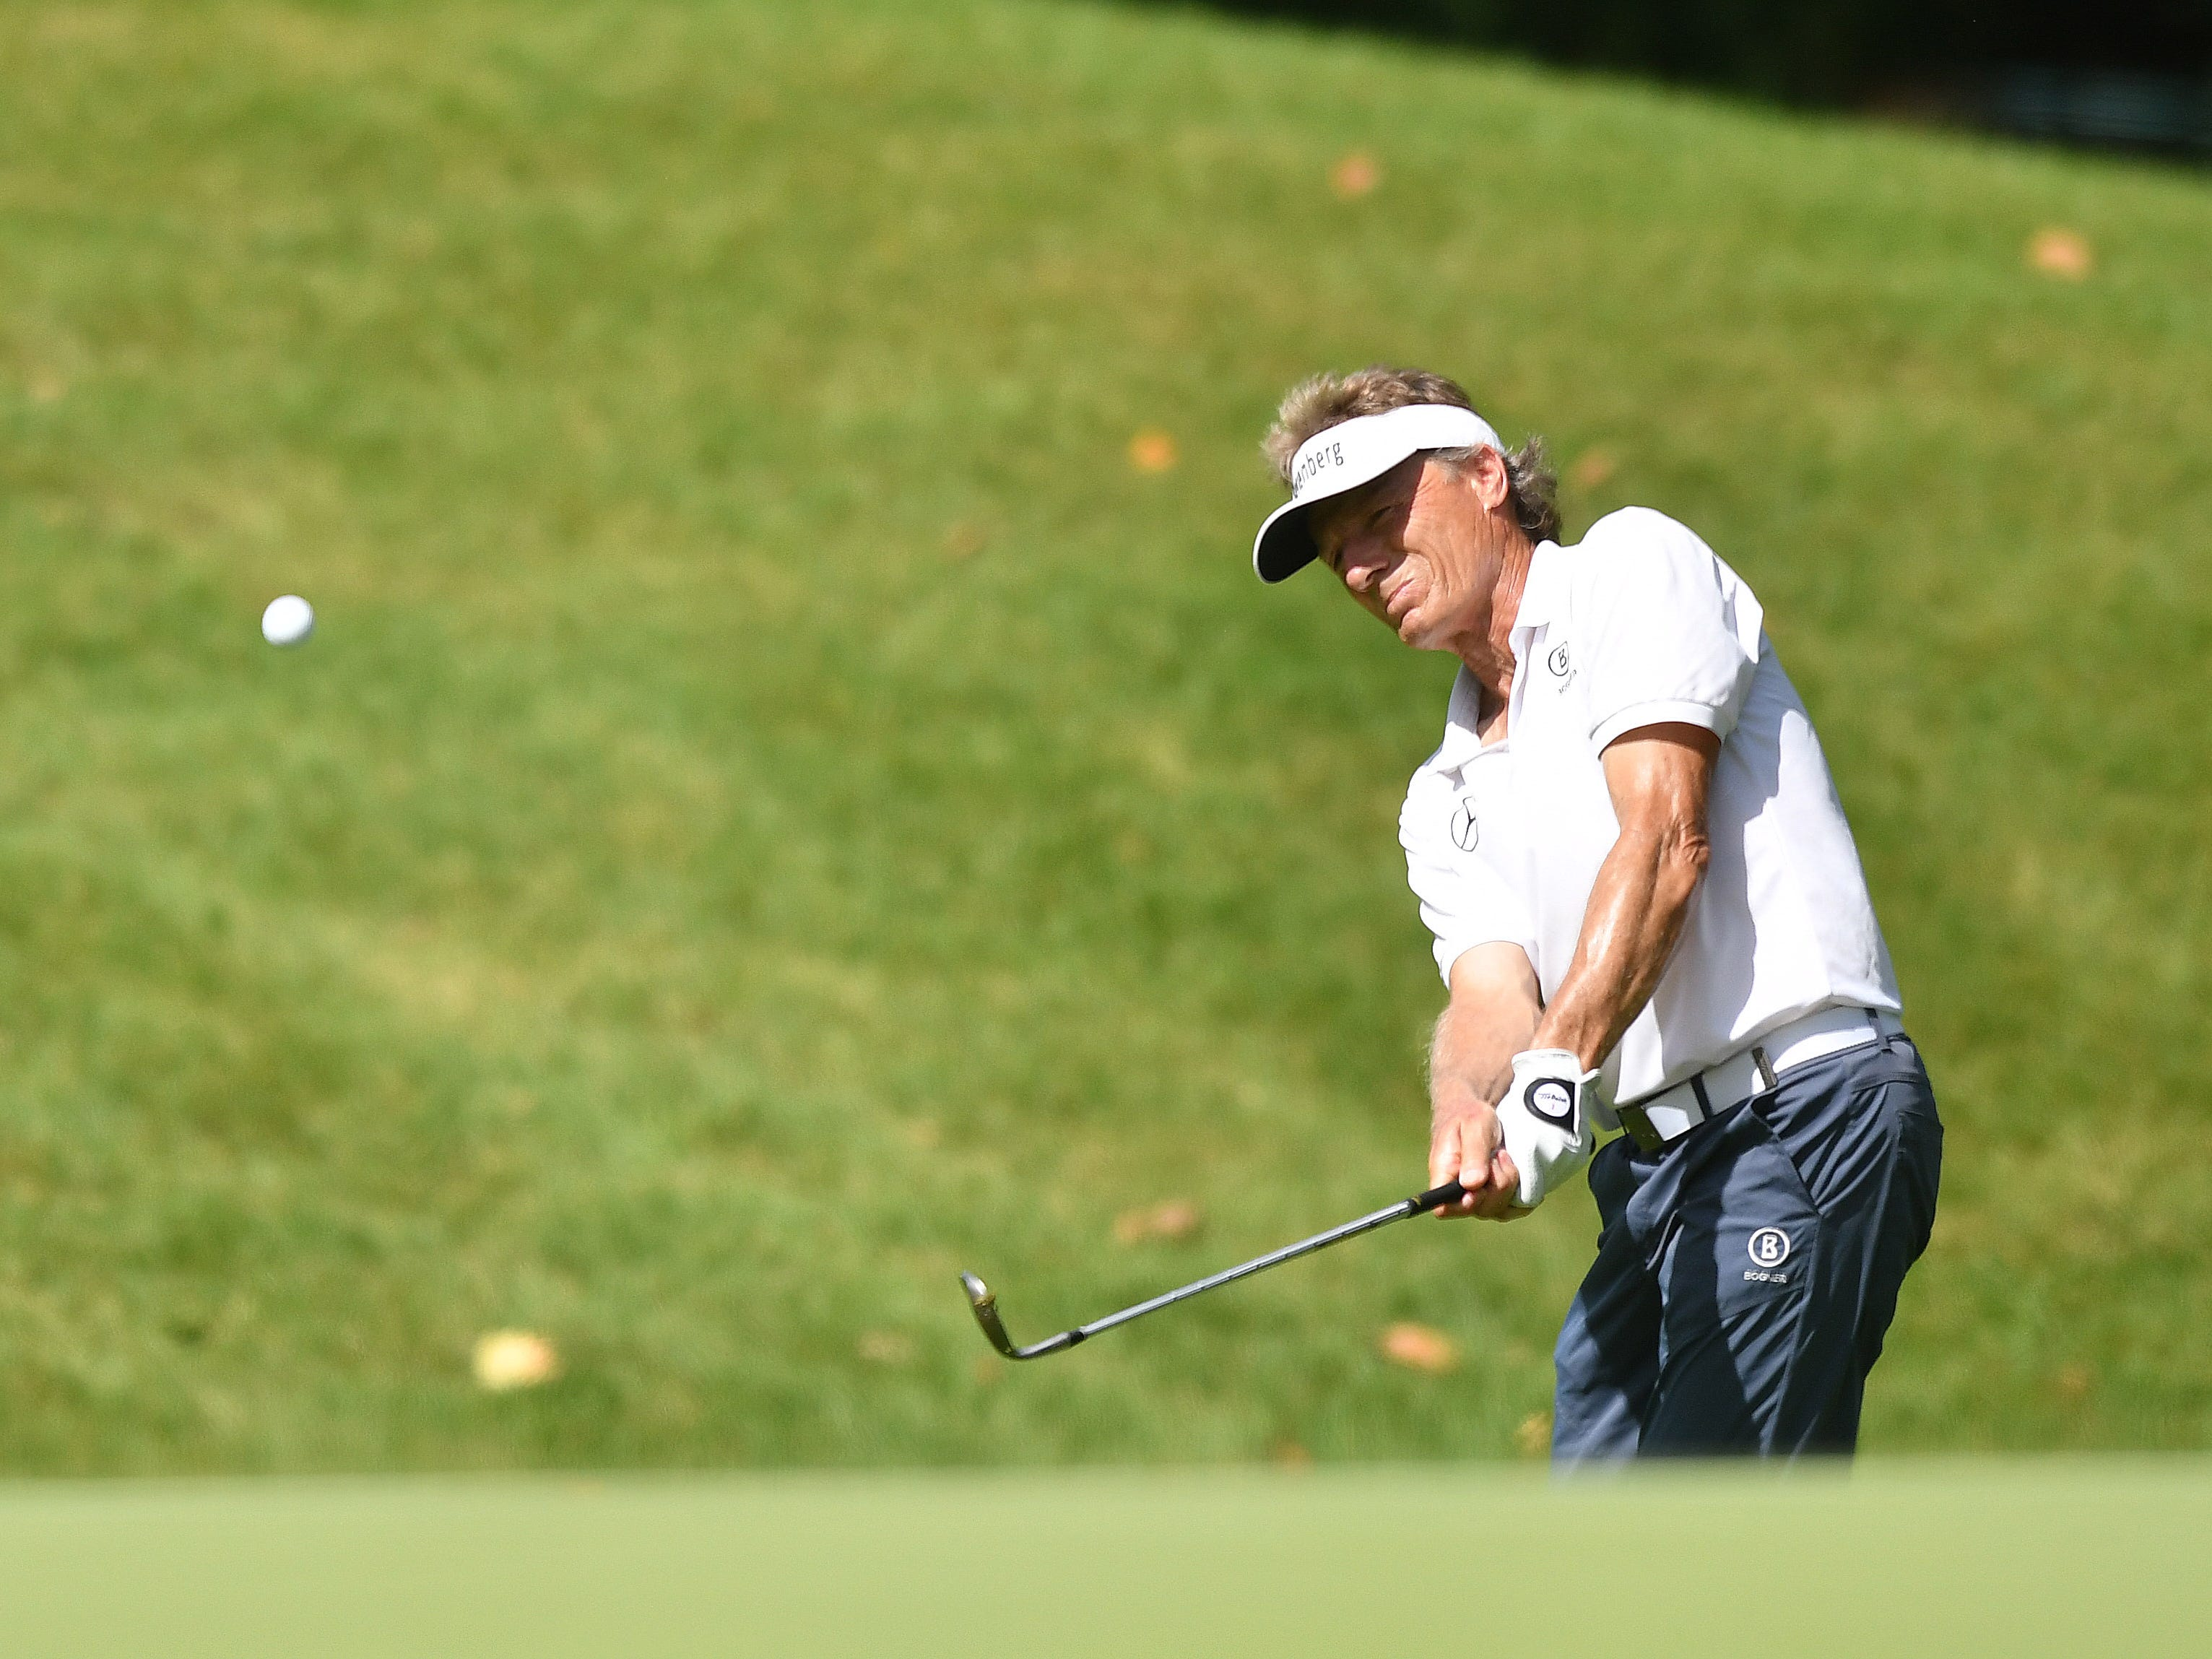 Bernard Langer watches his chip shot on the first hole at the Ally Challenge.